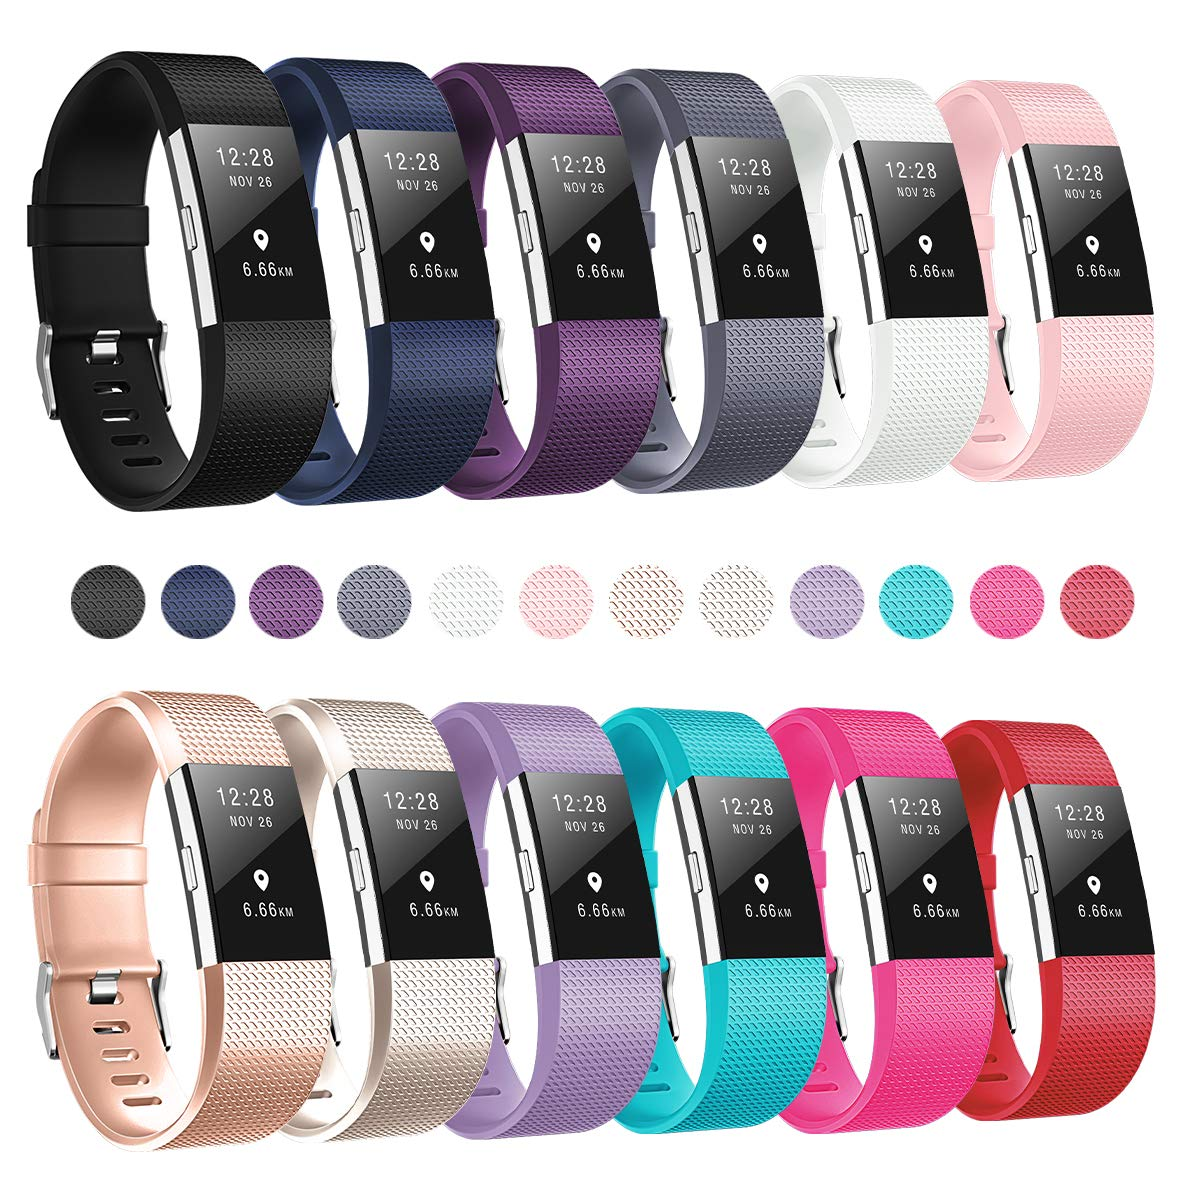 d698a6a72d06a Humenn Bands Compatible for Fitbit Charge 2, Replacement Accessory Sport  Band for Fitbit Charge 2 HR, 12-Pack